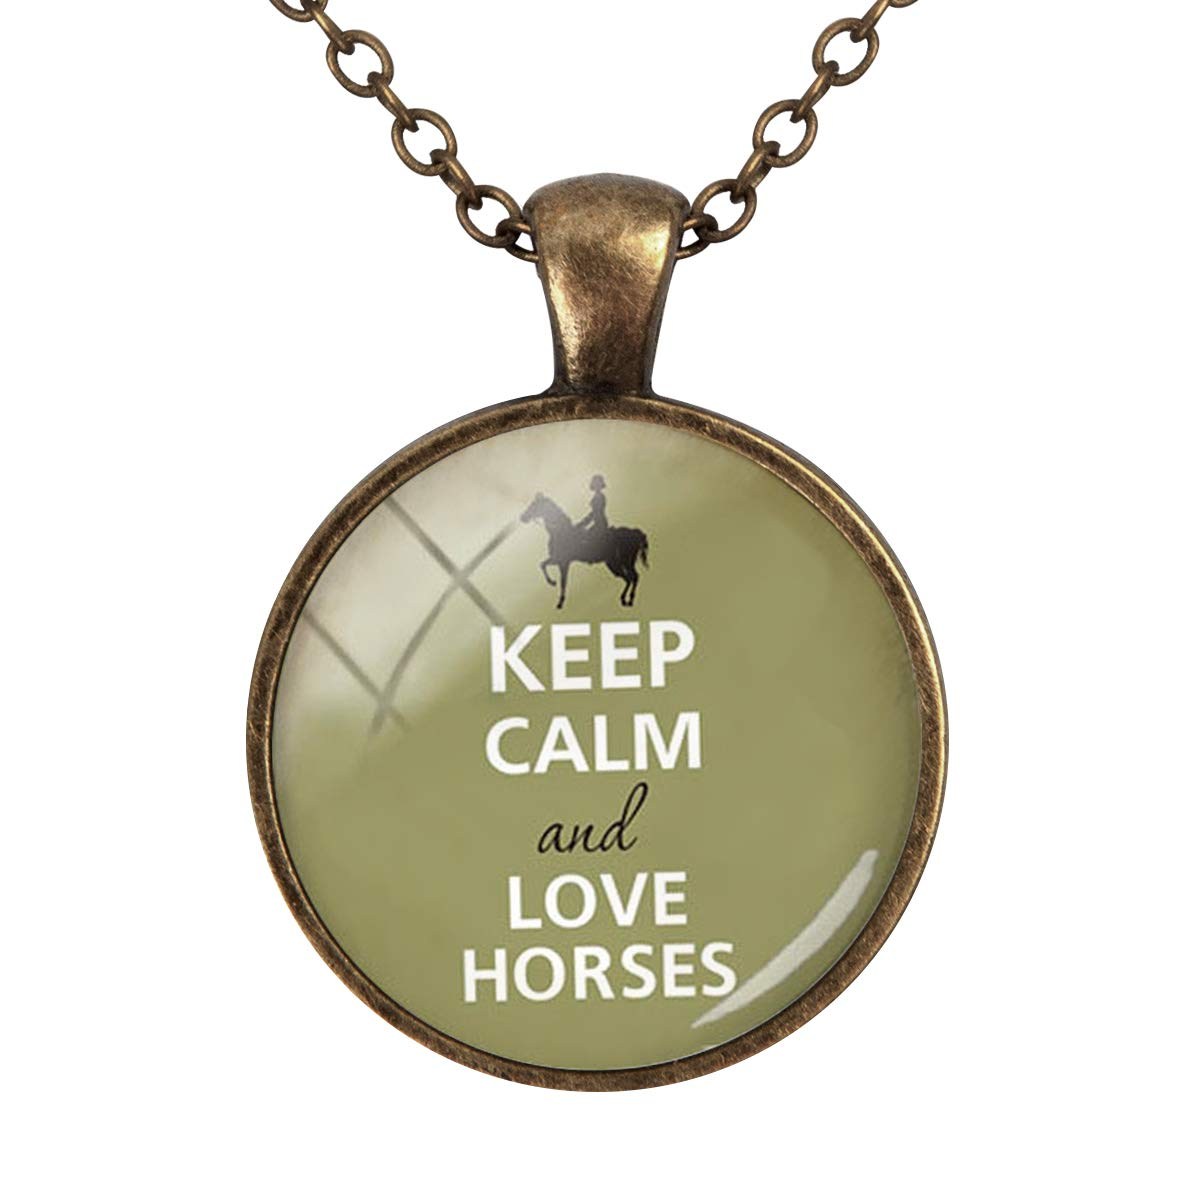 Family Decor Keep Calm and Love Horses Pendant Necklace Cabochon Glass Vintage Bronze Chain Necklace Jewelry Handmade